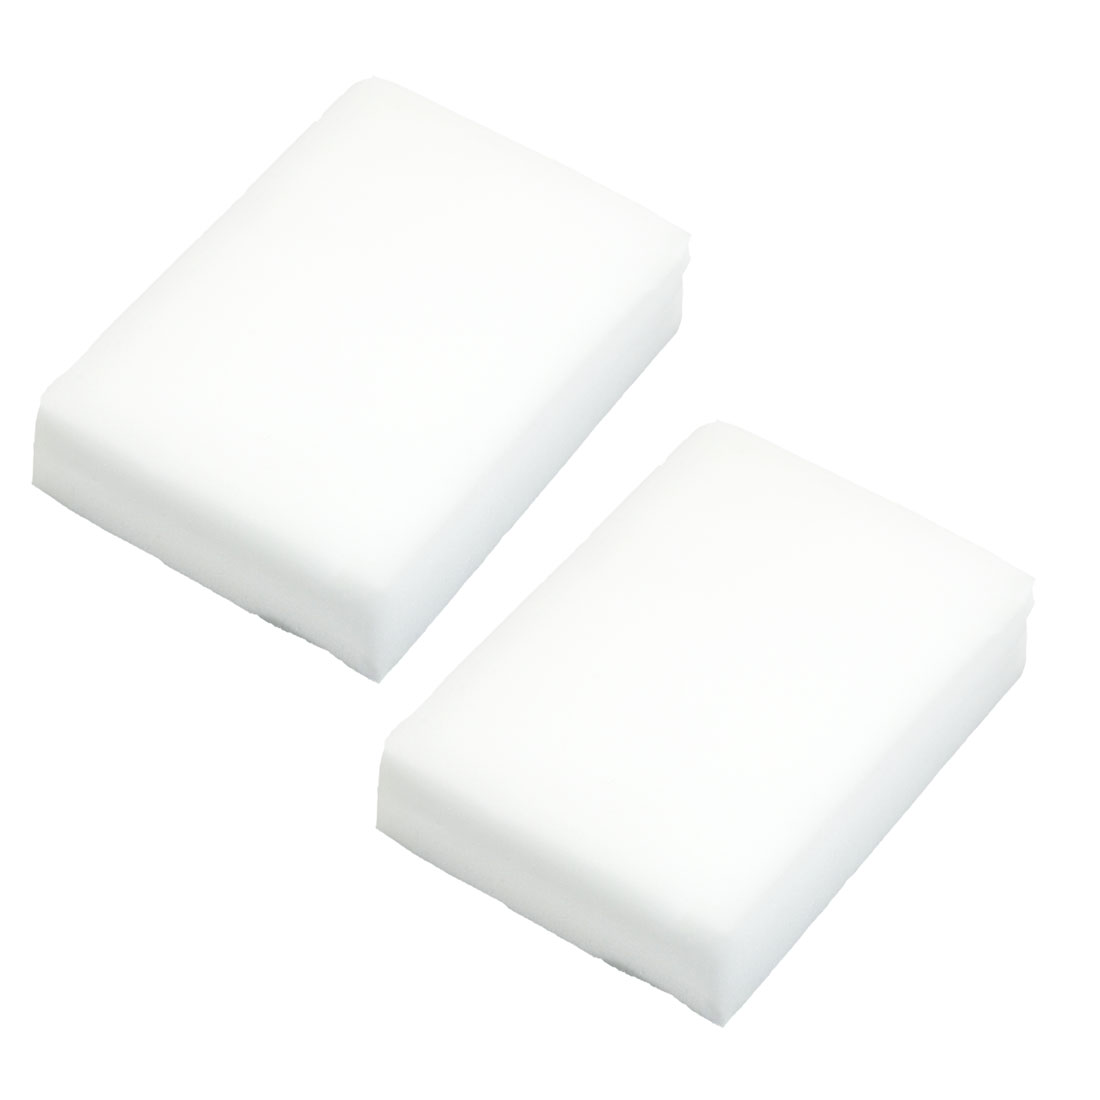 Kitchen Water Absorbing Cleaner Sponge Block Cleaning Tool White 2 Pcs